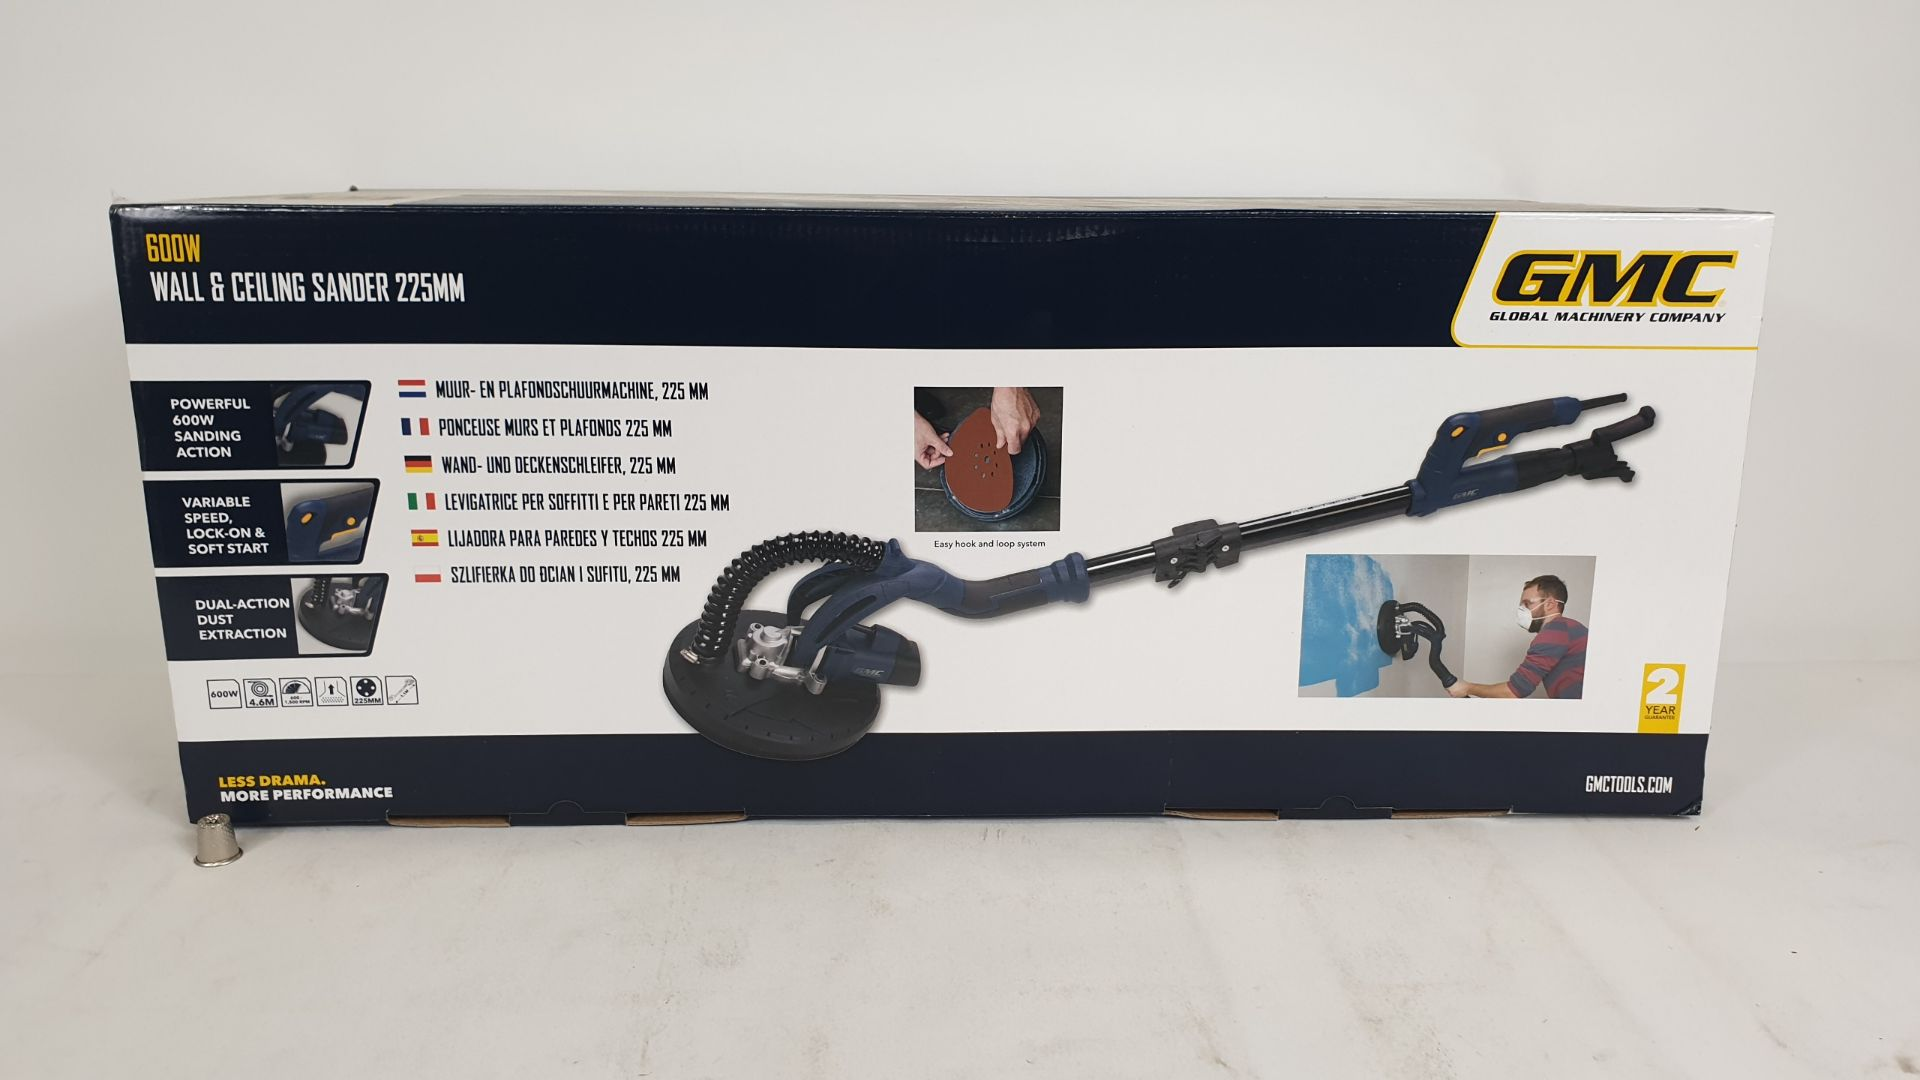 Lot 1550 - (LOT FOR THURSDAY 28TH MAY AUCTION) GMC 600W WALL AND CEILING SANDER 225M (PRODUCT CODE 264803) - (